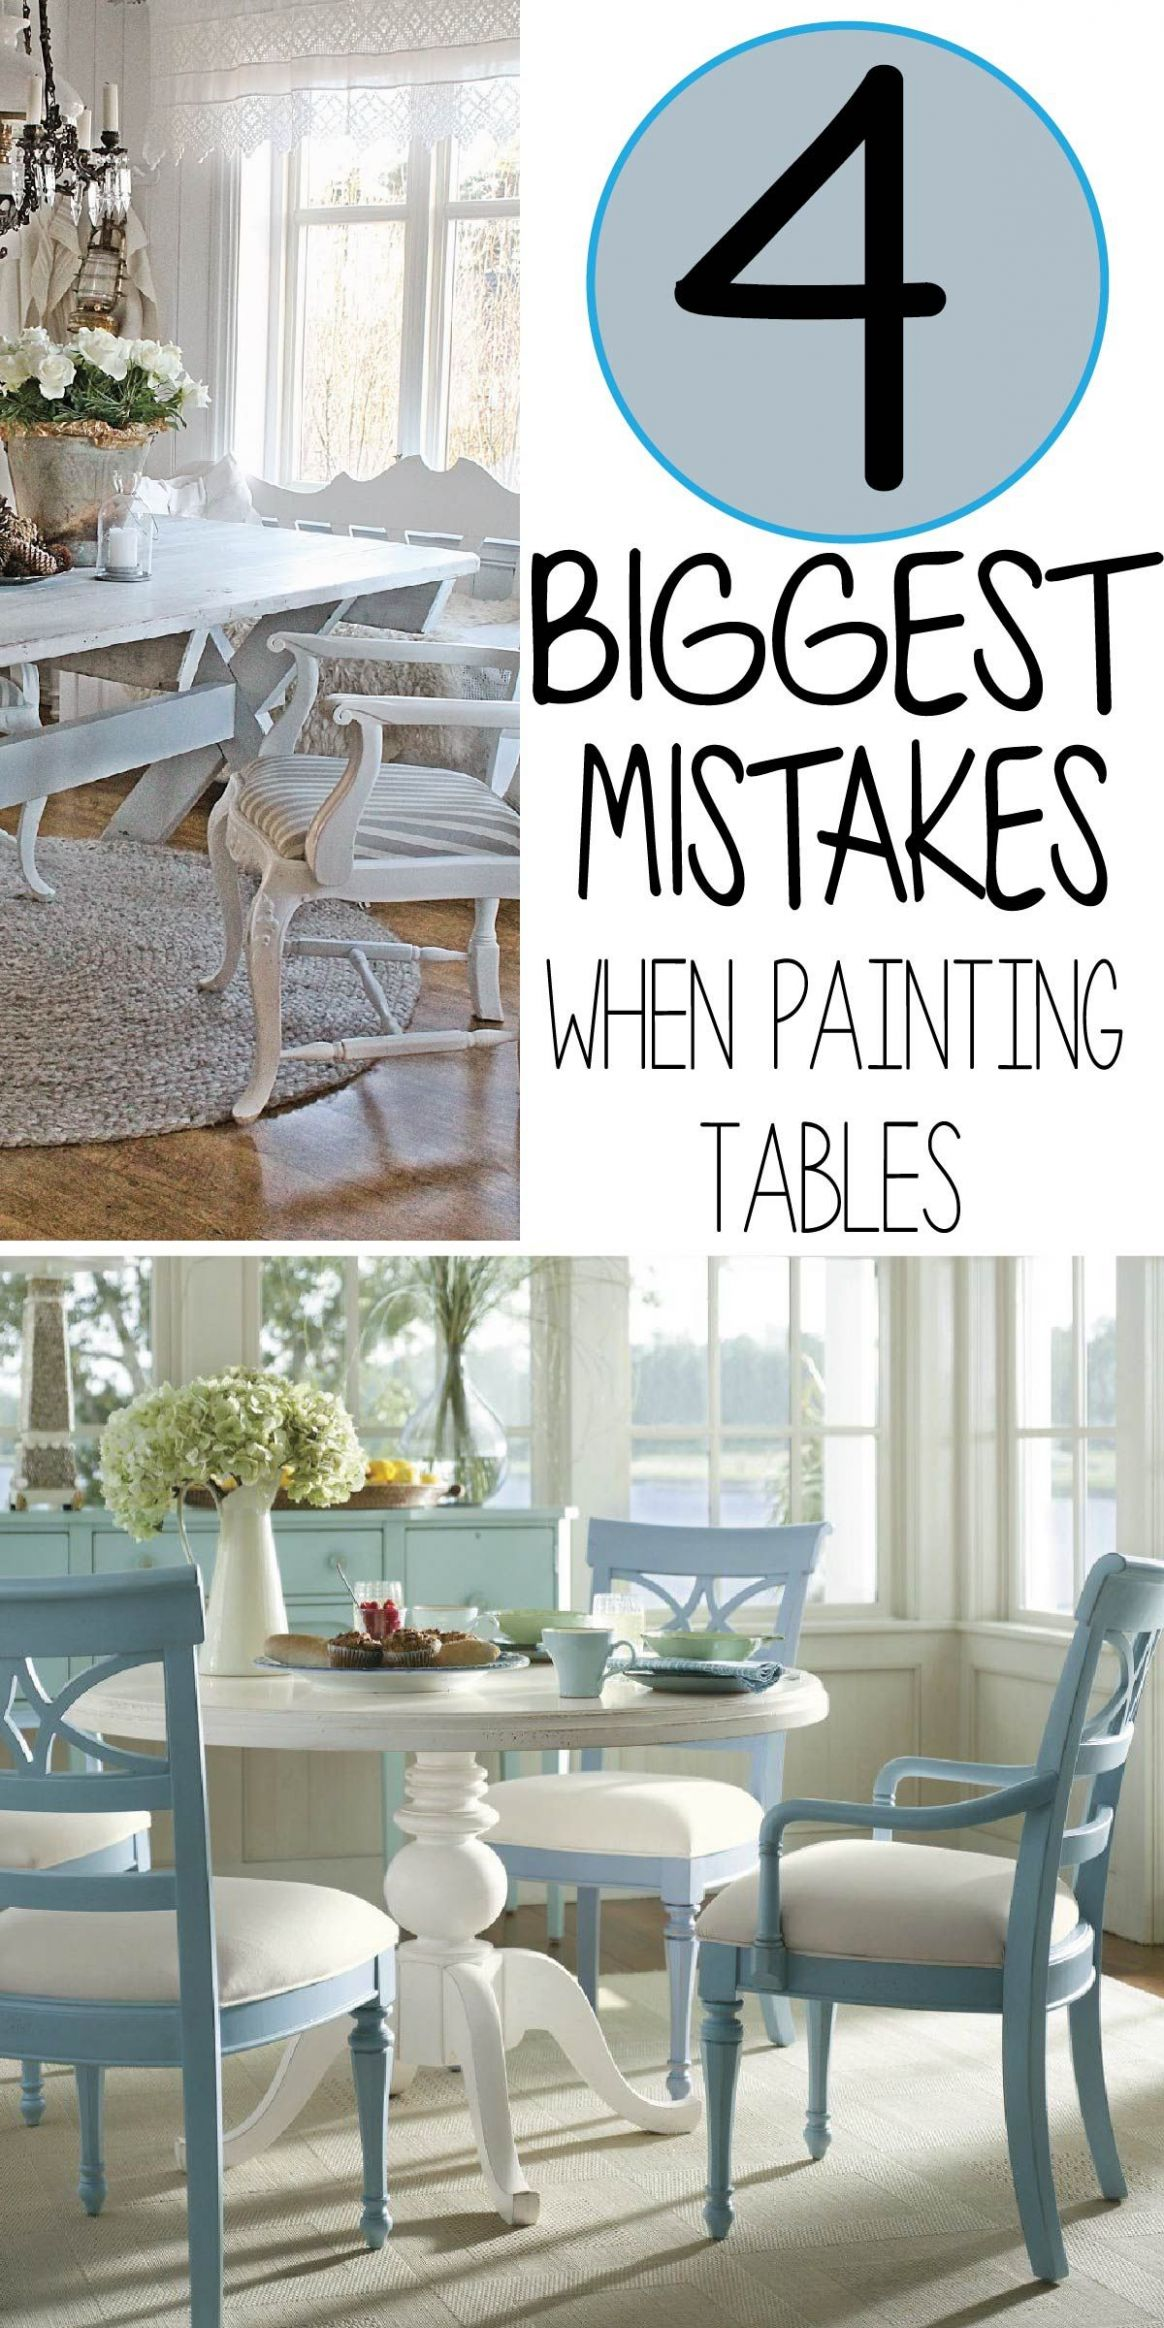 11 Common Mistakes Made Painting Kitchen Tables | Painted kitchen ..